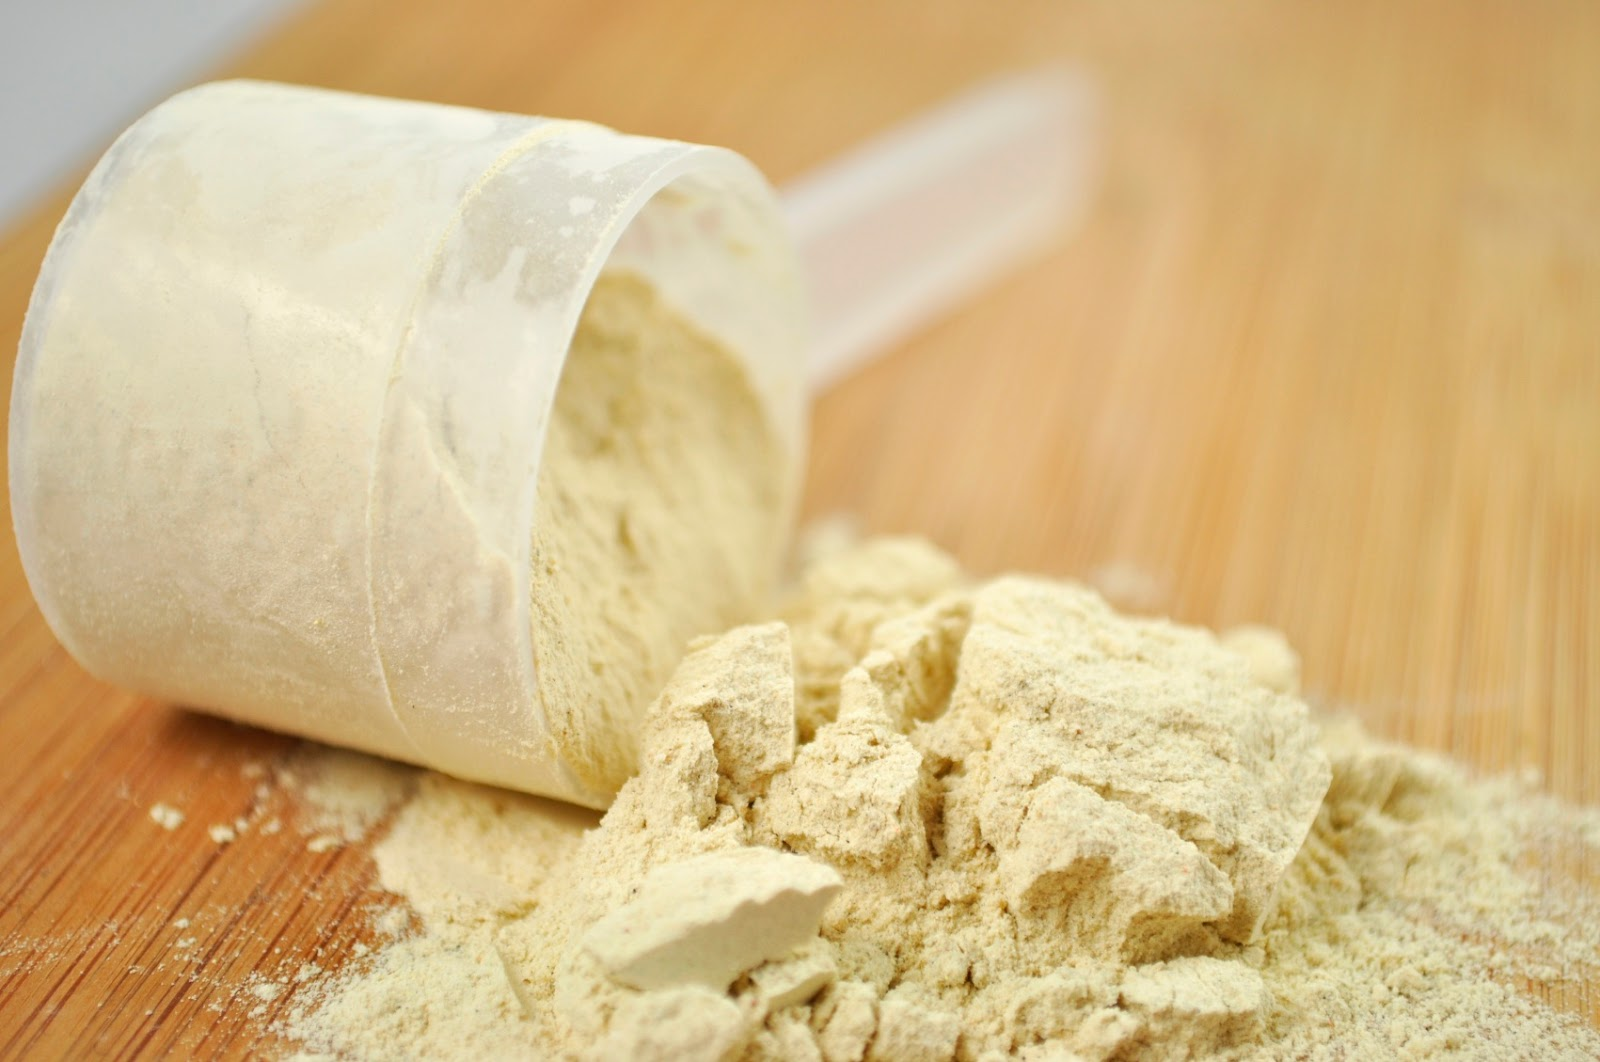 Raw Whey Protein Vs Whey Protein Isolate